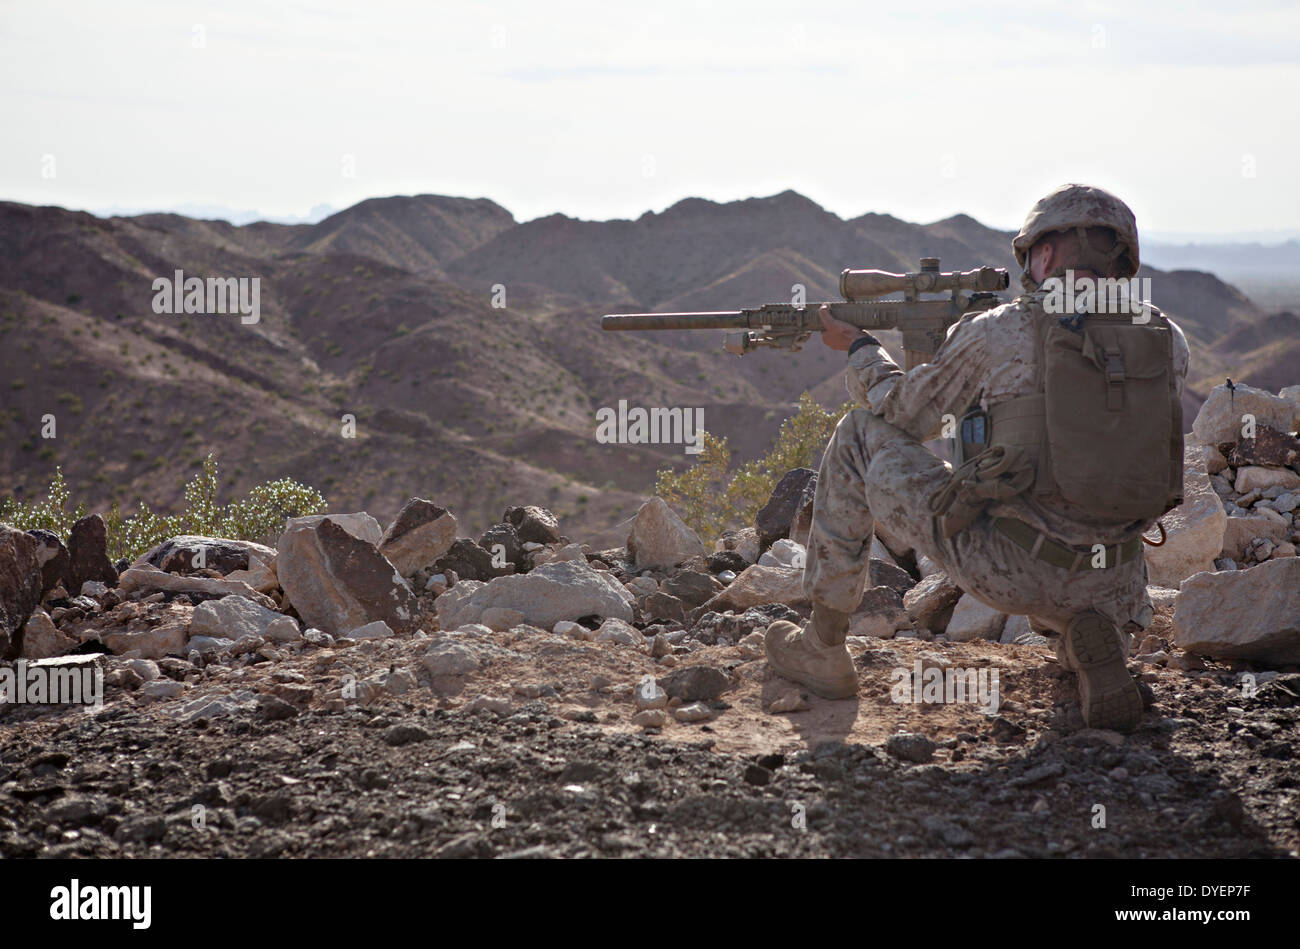 A US Marine Corps scout sniper during a fire and maneuver drill with an M110 semi-auto sniper system during Talon Exercise March 29, 2014 in Yuma, Arizona. - Stock Image